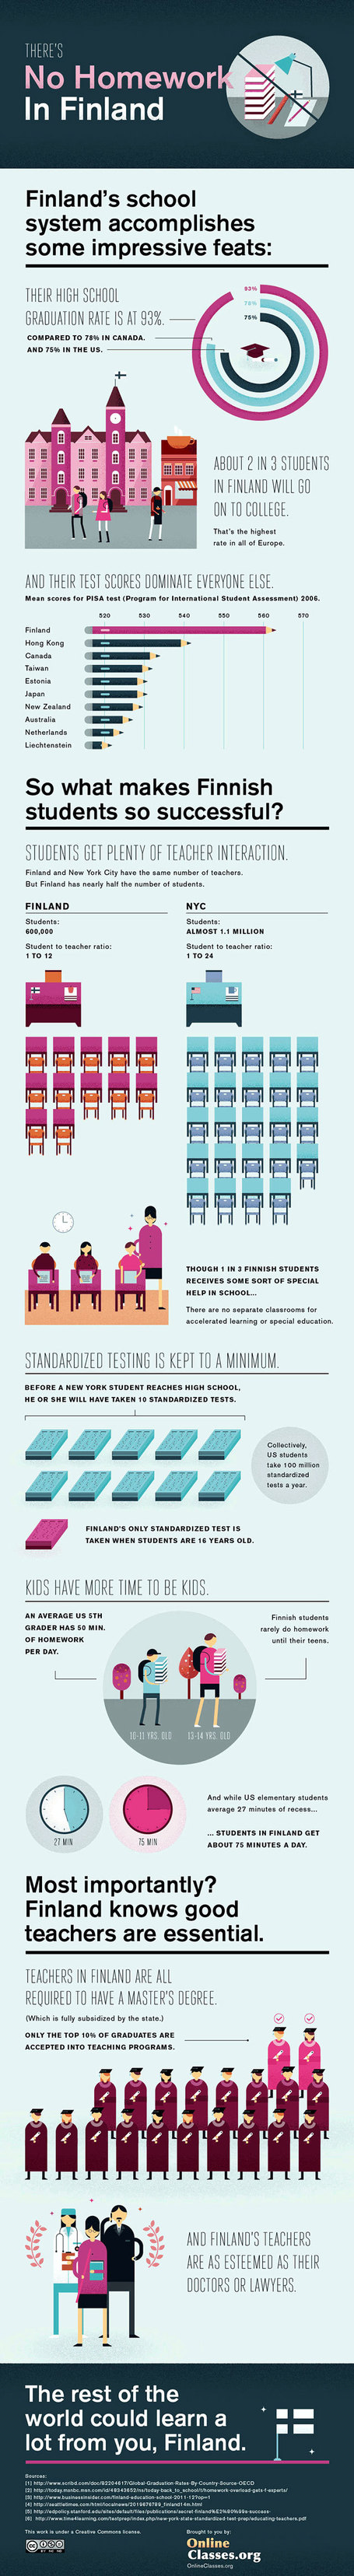 Finland's School System - Infographic | Film, Art, Design, Transmedia, Culture and Education | Scoop.it